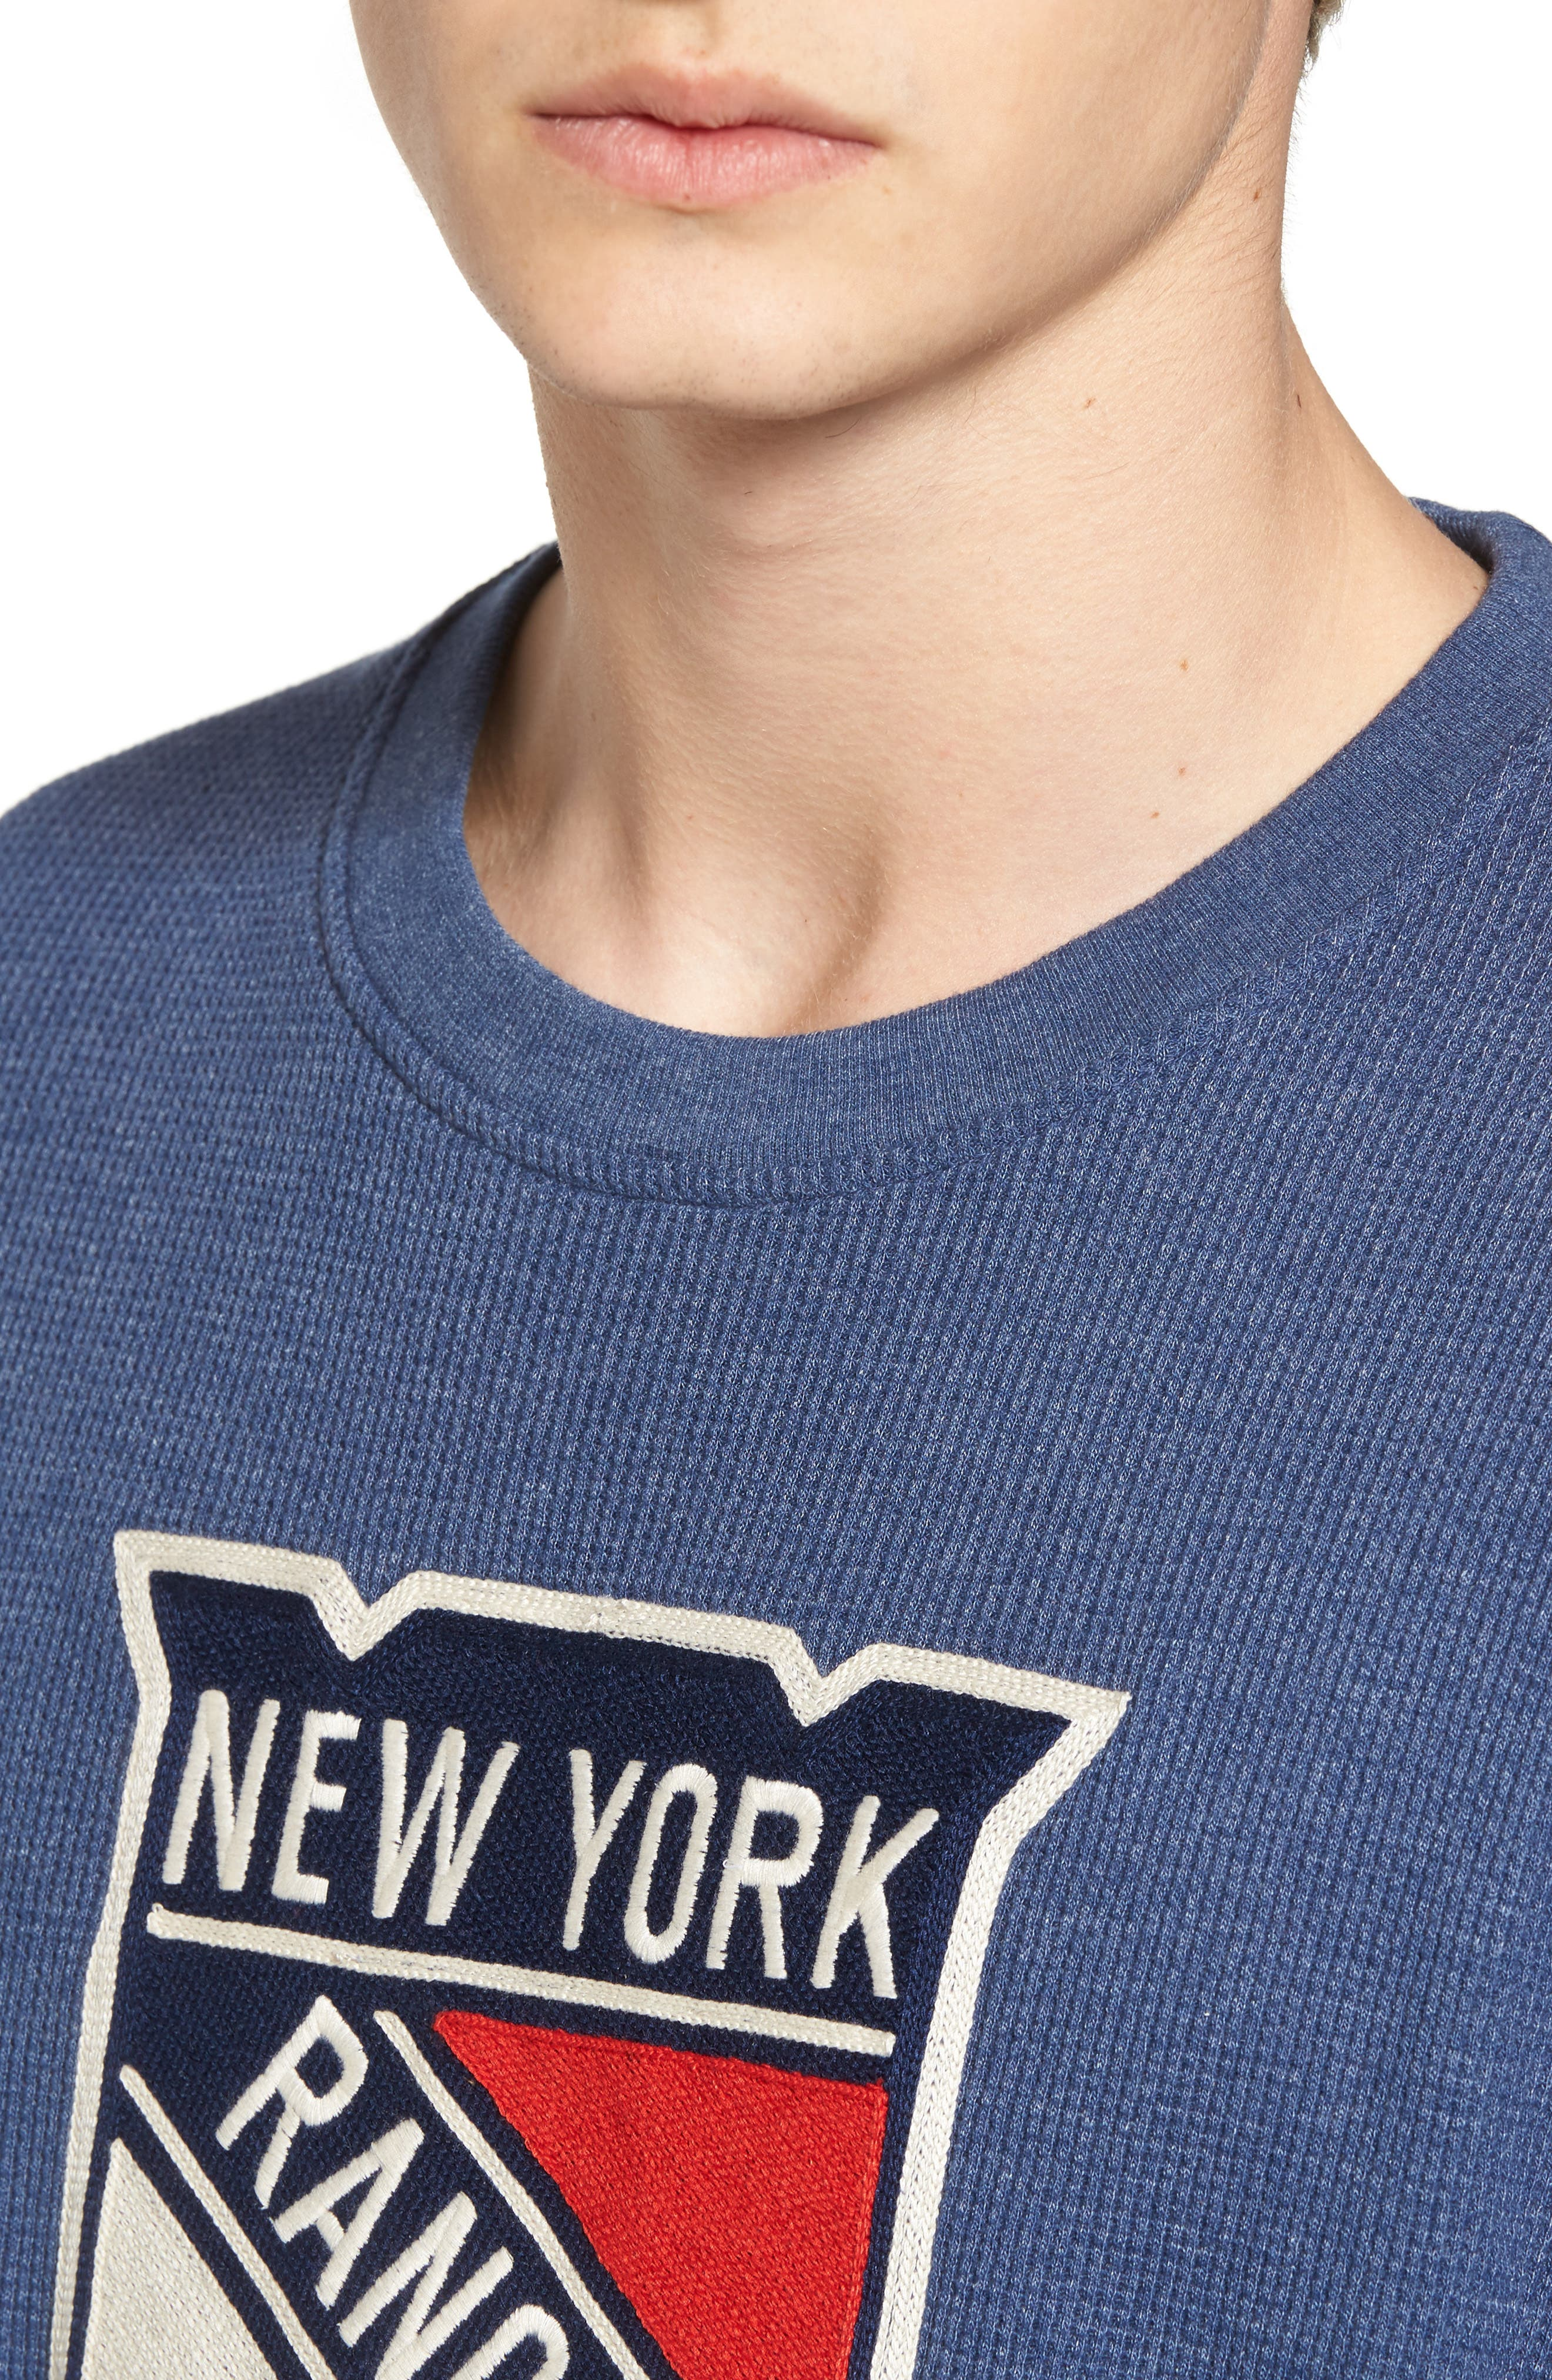 New York Rangers Embroidered Long Sleeve Thermal Shirt,                             Alternate thumbnail 4, color,                             410